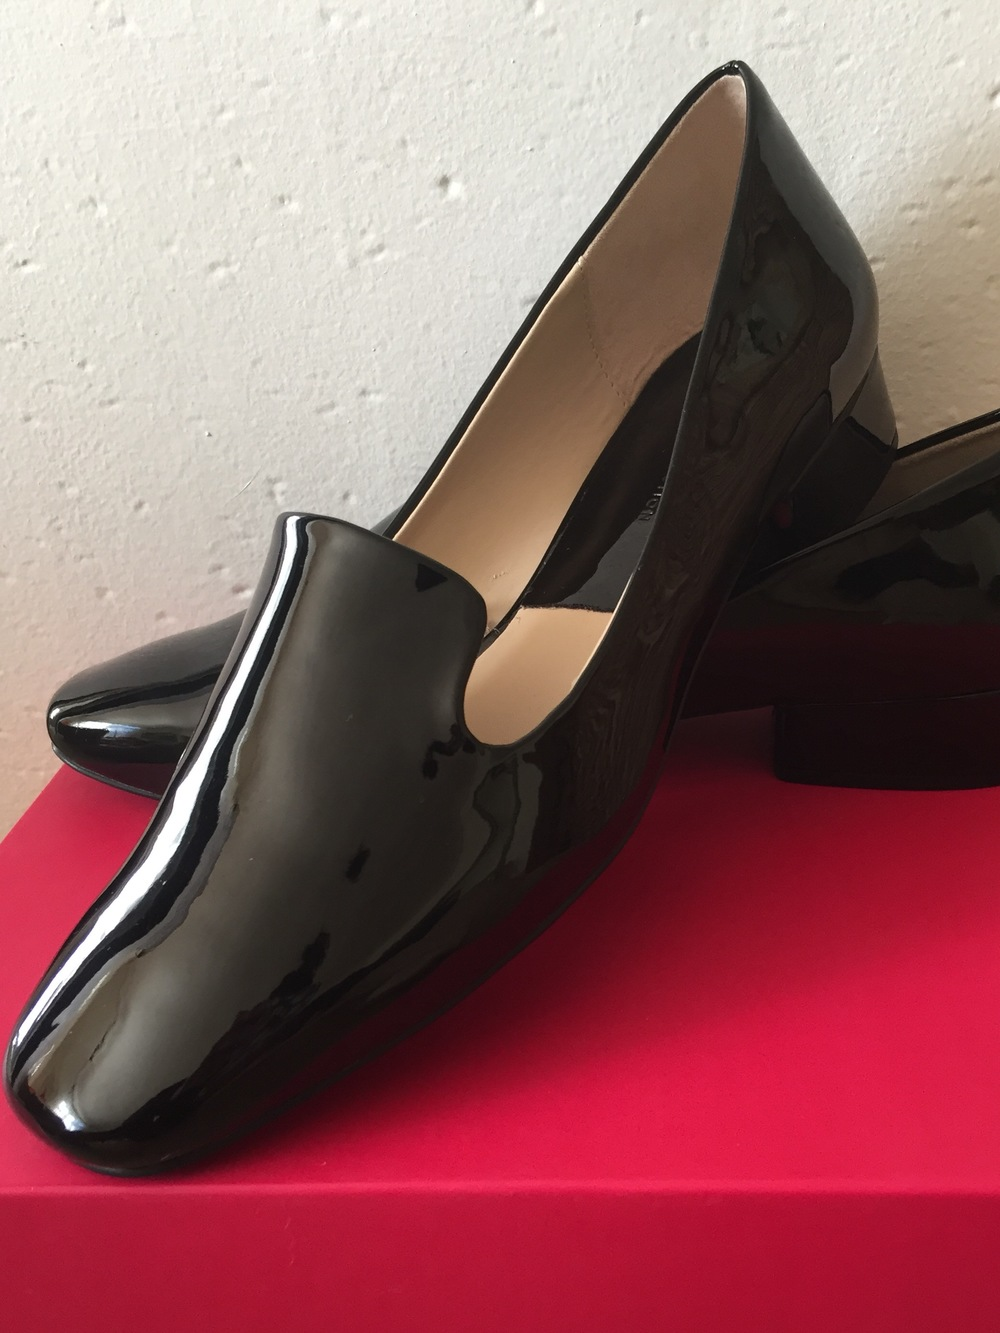 sleek, right? these shiny beauties would make a basic black outfit a bit more interesting.